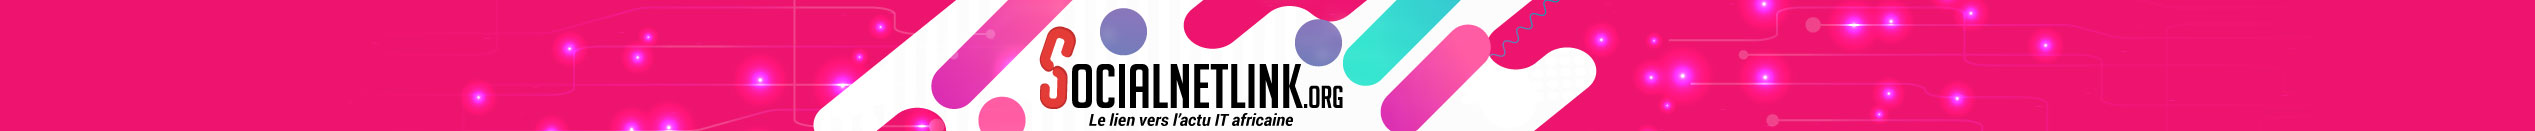 Socialnetlink-La référence technologique en Afrique